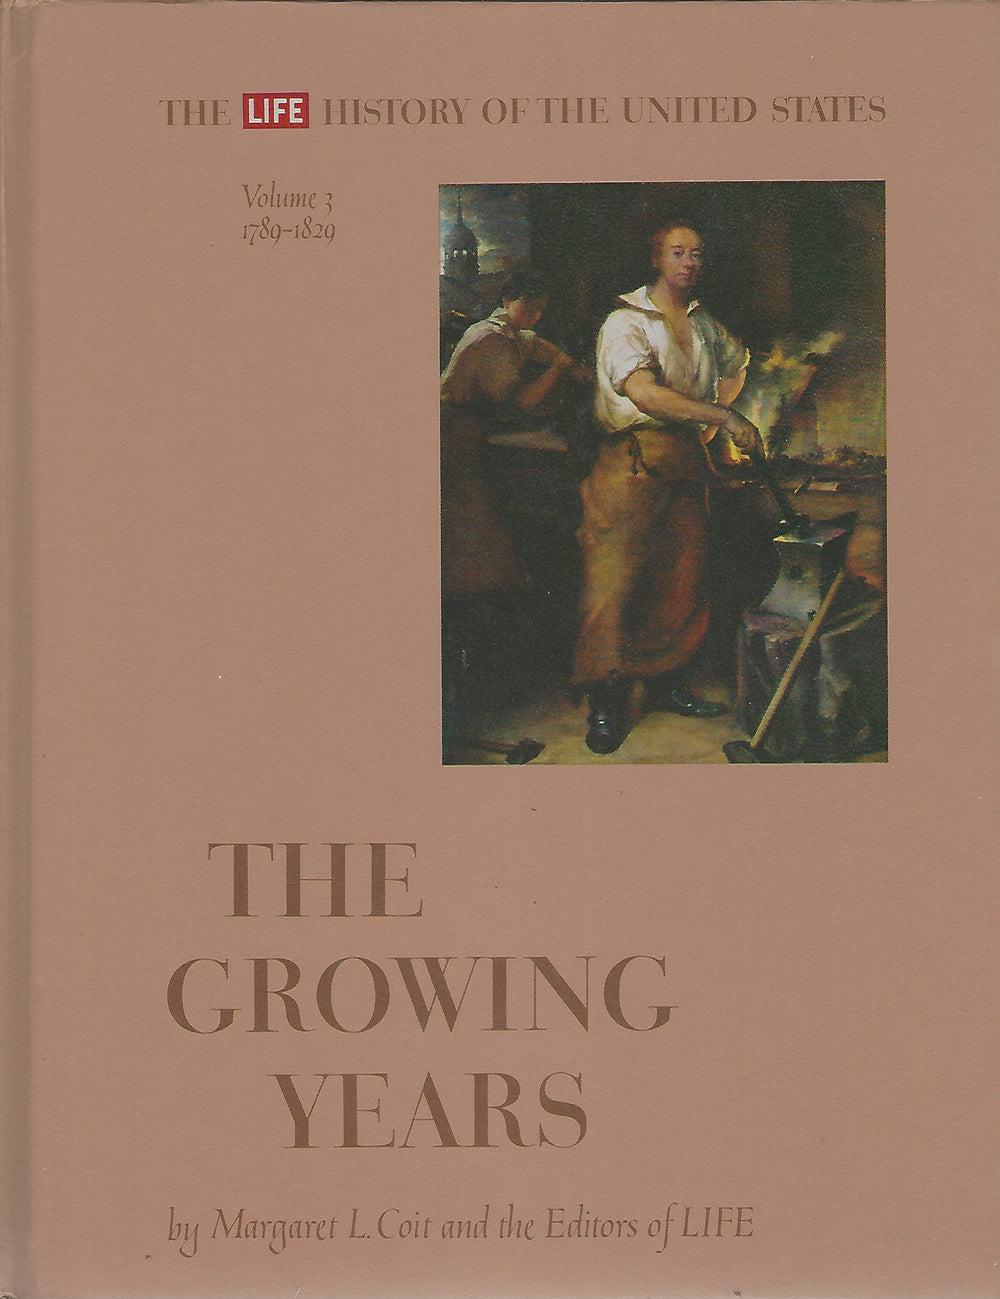 TIME-LIFE: The History of The United States; Vol 3 1789-1829; The Growing Years by Margerat L. Coit